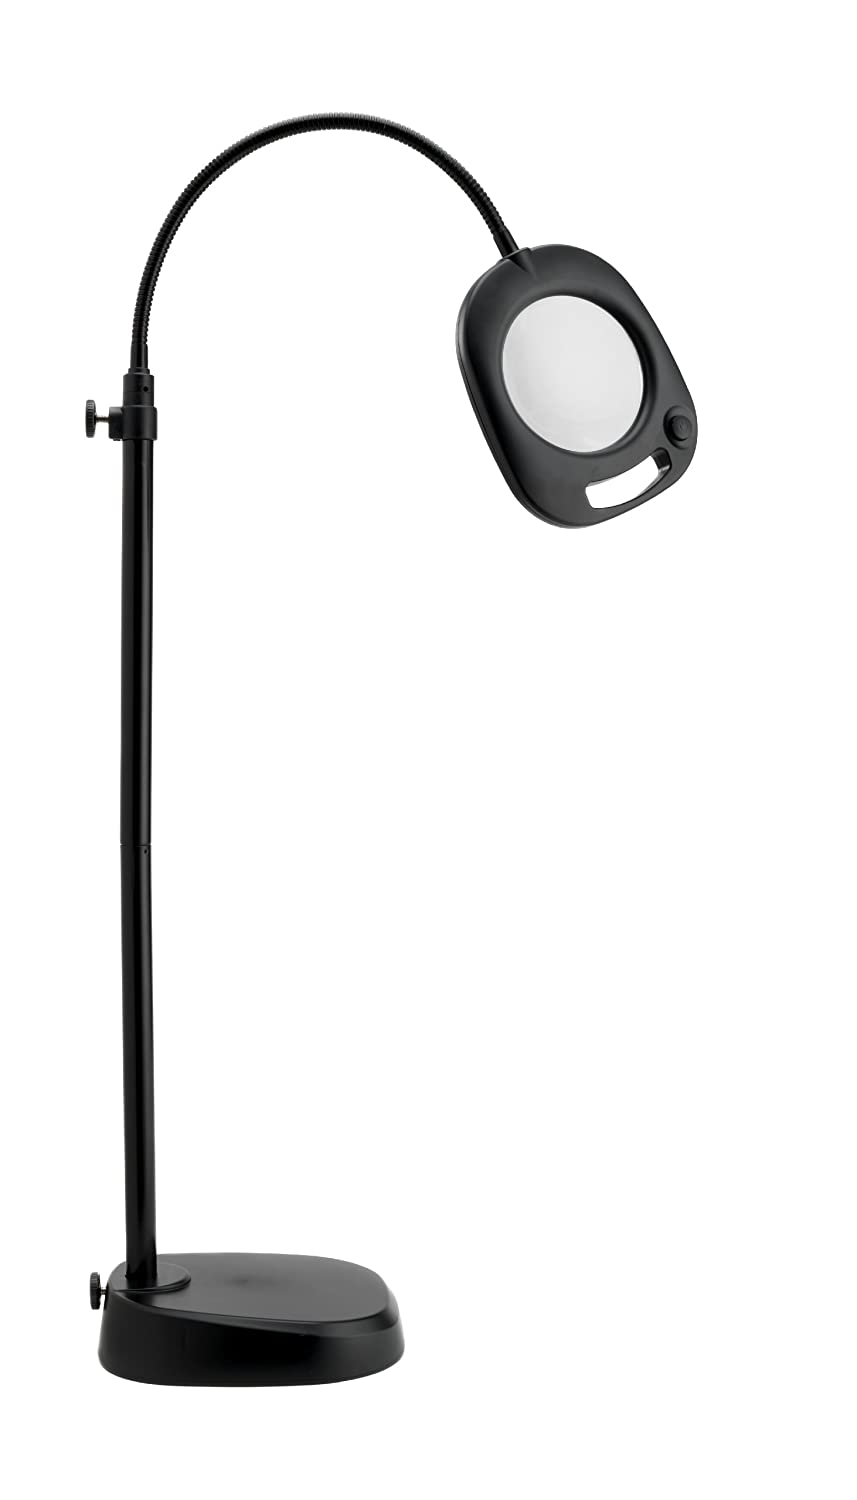 Amazon daylight naturalight led floor lamp 5 inch arts amazon daylight naturalight led floor lamp 5 inch arts crafts sewing mozeypictures Choice Image